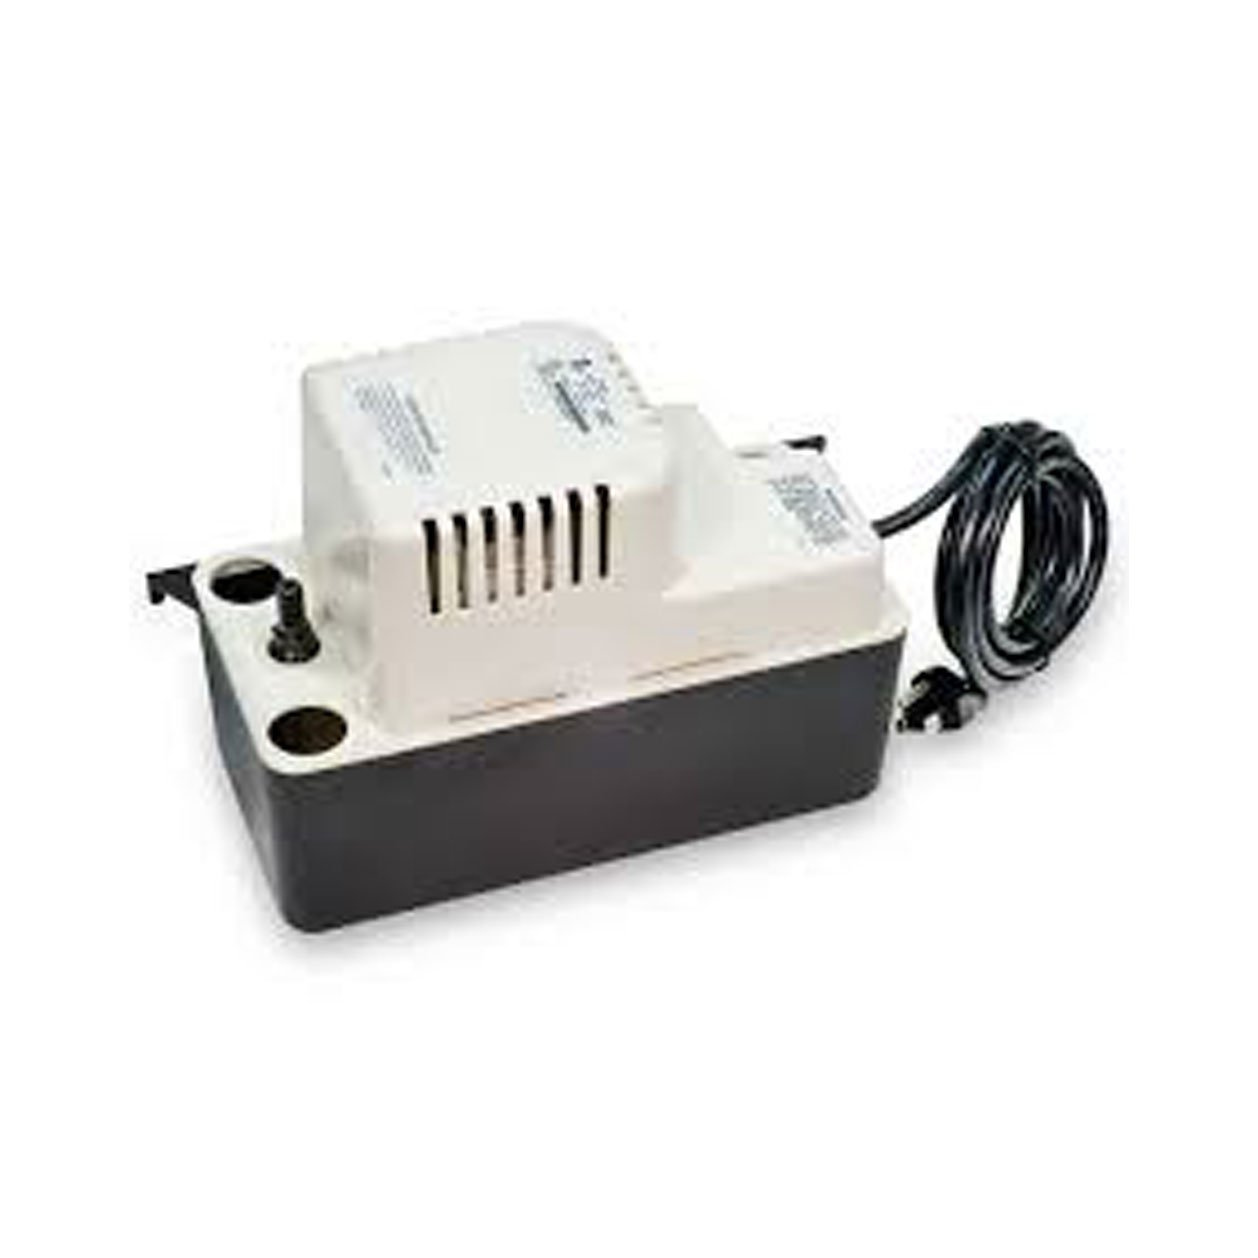 Little Giant 554435 VCMA-20ULST-115 Condensate Removal Pump, 115V